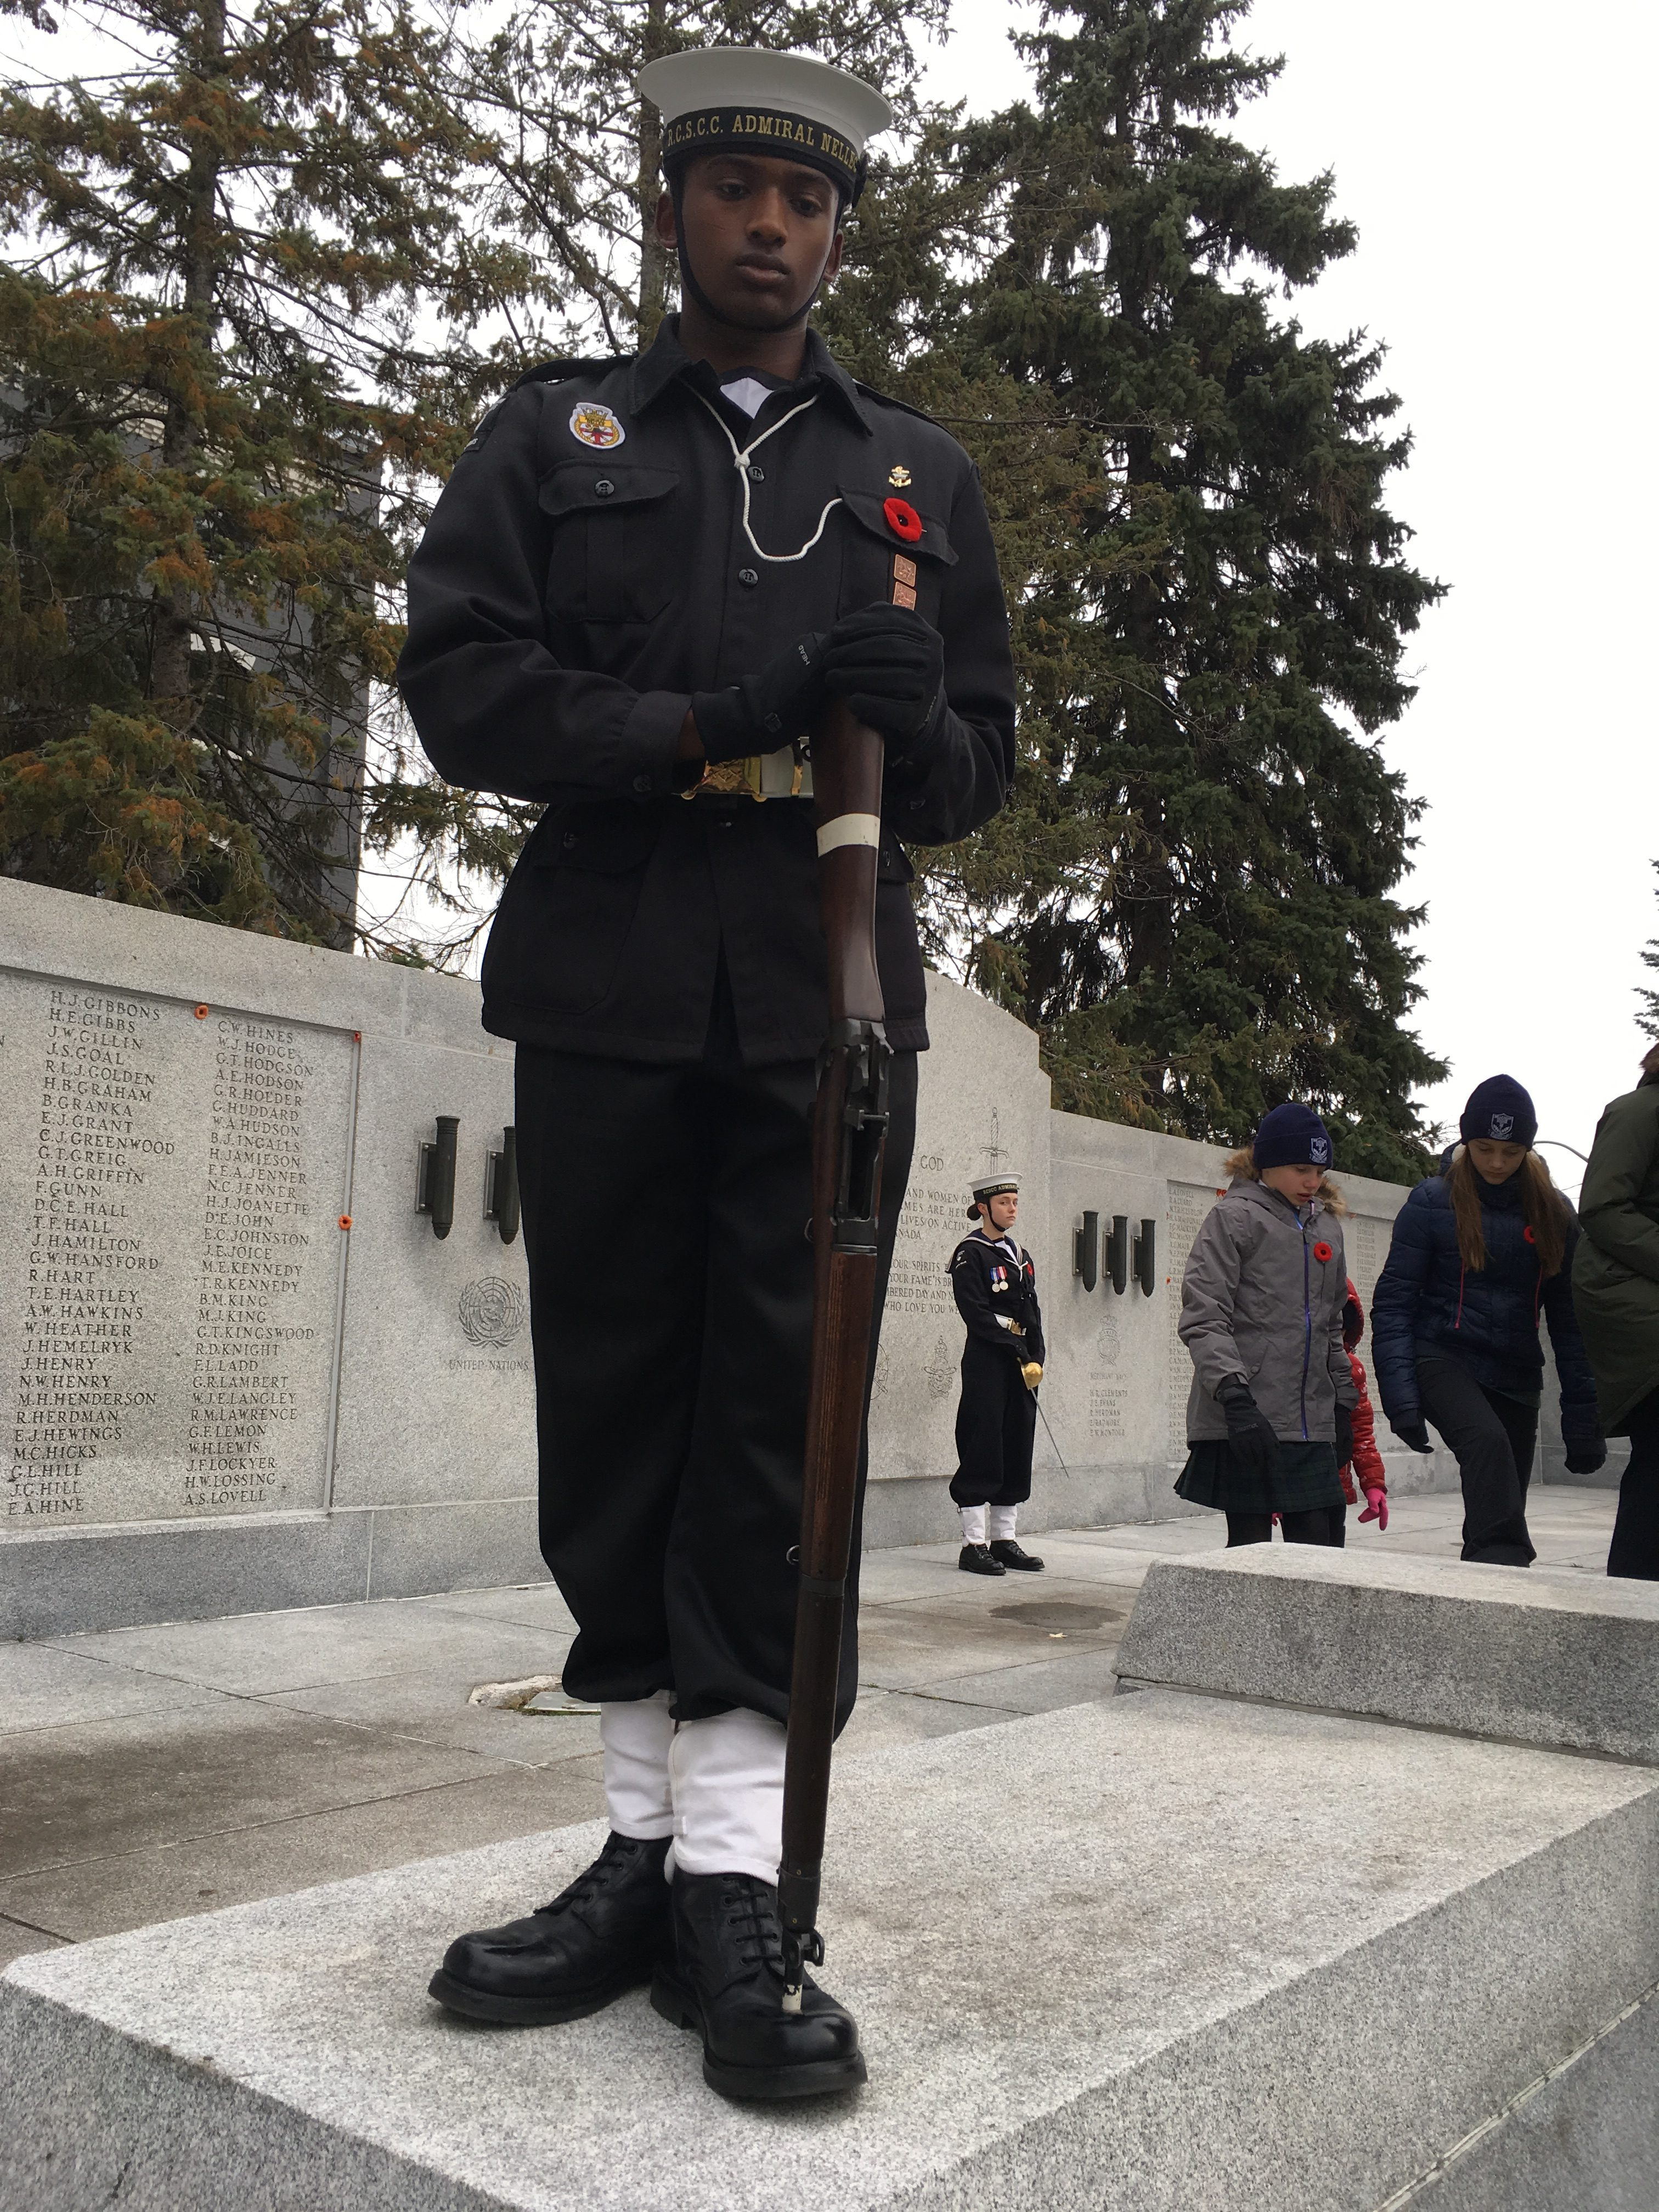 PO2 Loftman on cenotaph